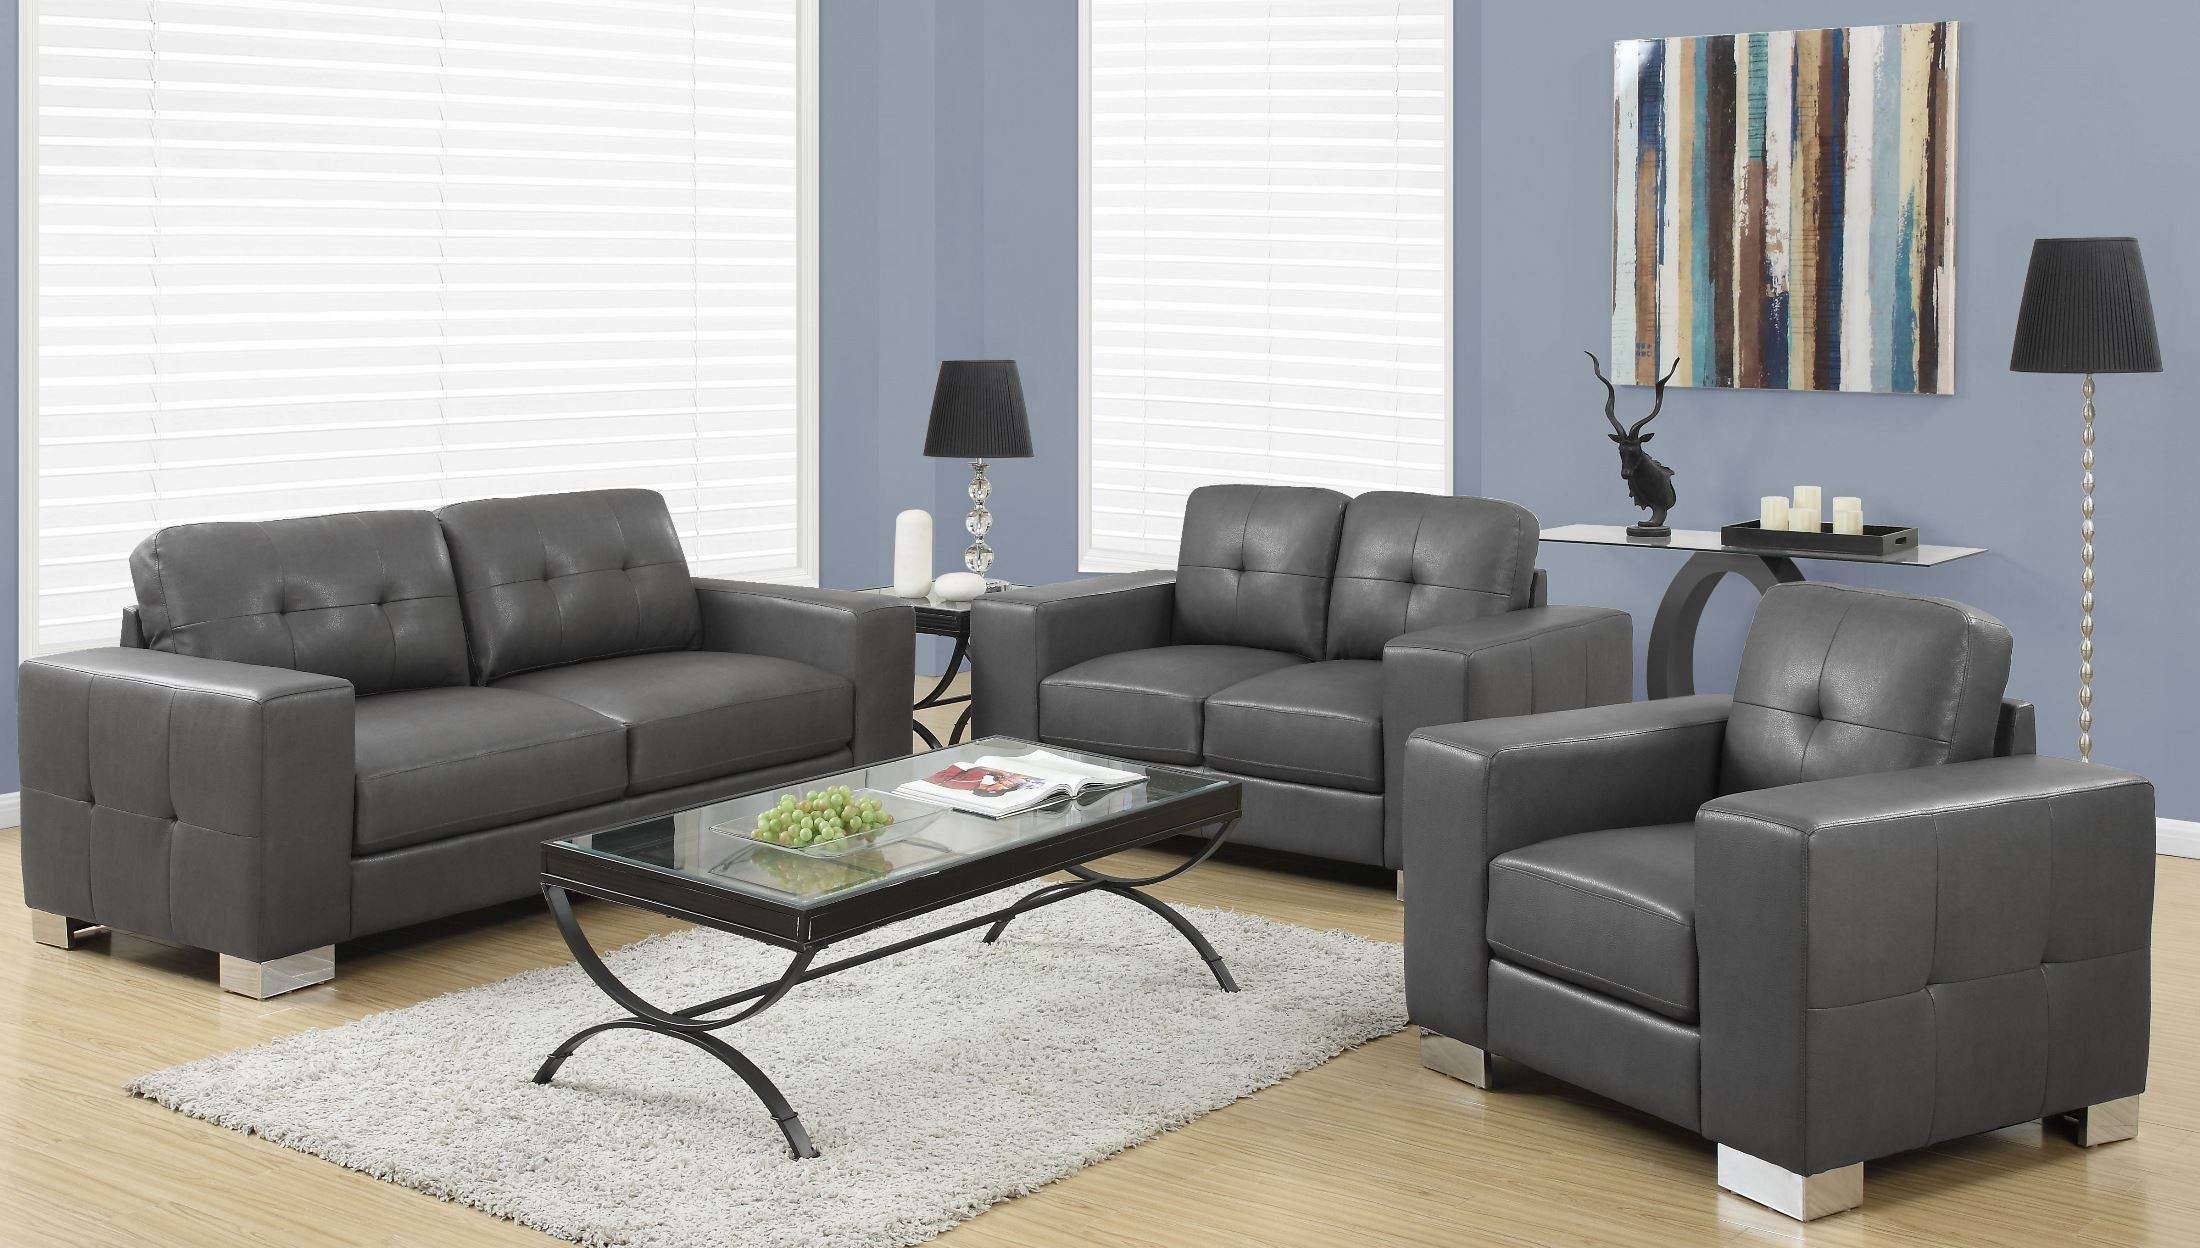 grey living room furniture 8223gy charcoal gray bonded leather living room set from 11795